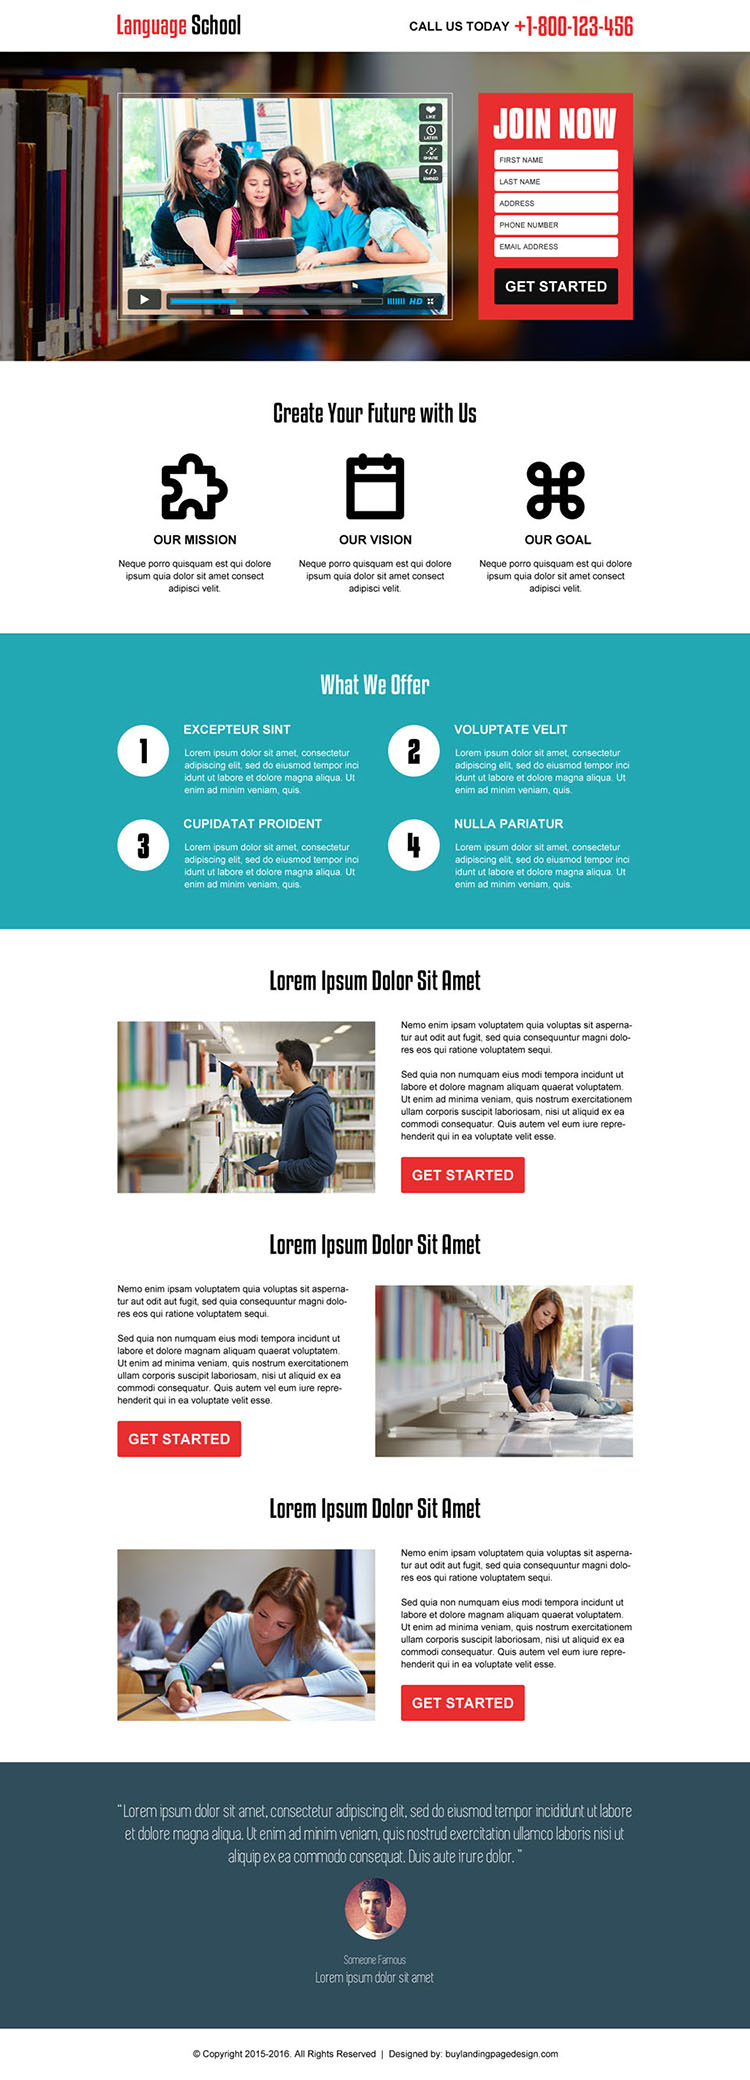 best education video responsive converting landing page design